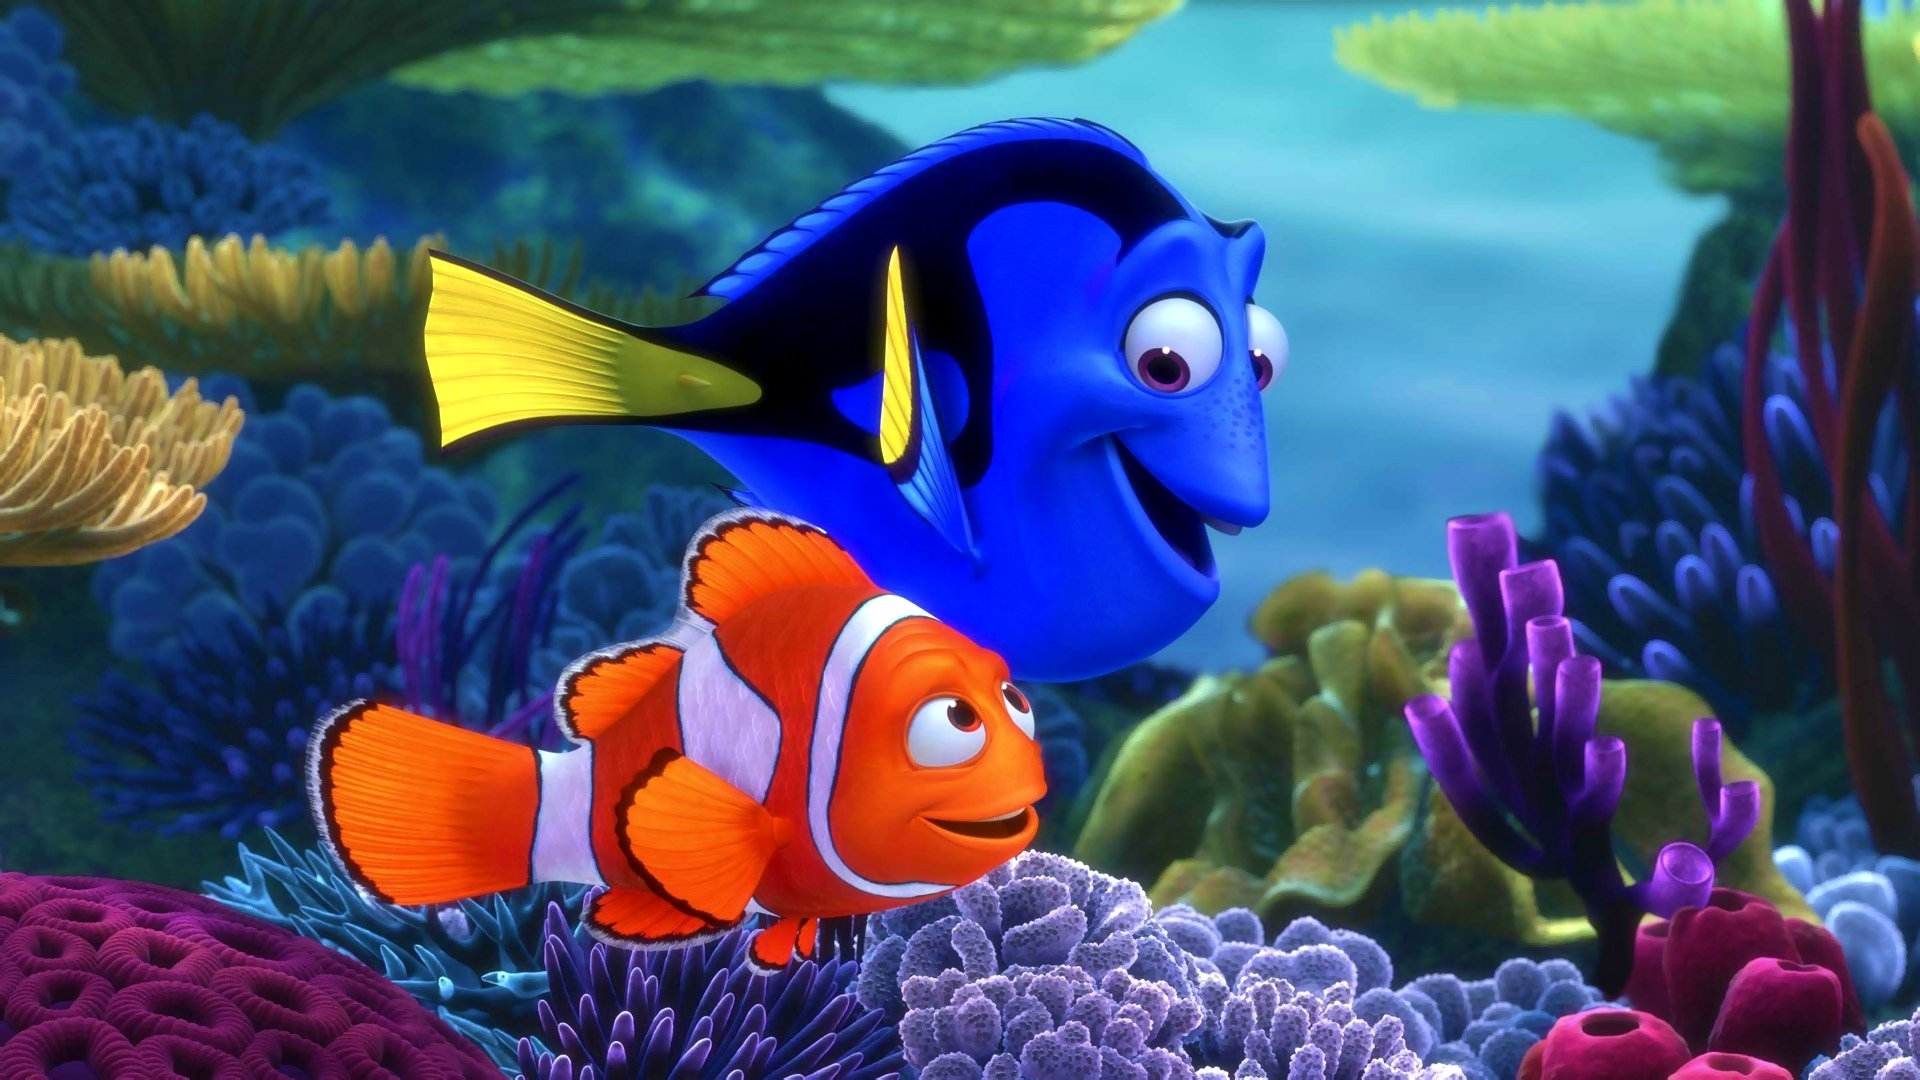 33 finding nemo hd wallpapers   background images - wallpaper abyss